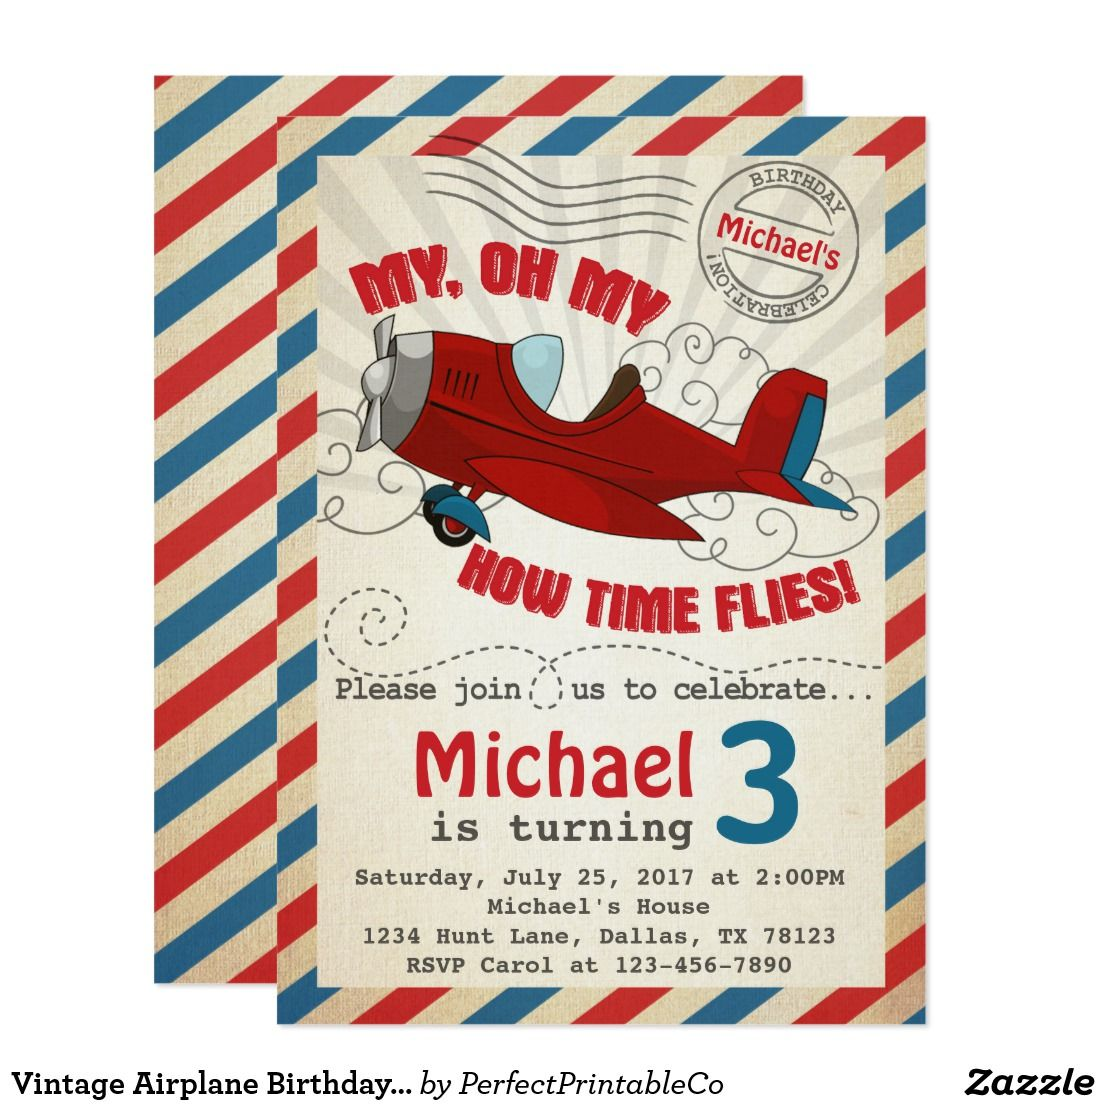 Vintage Airplane Birthday Party Invitation Invite Add a special ...